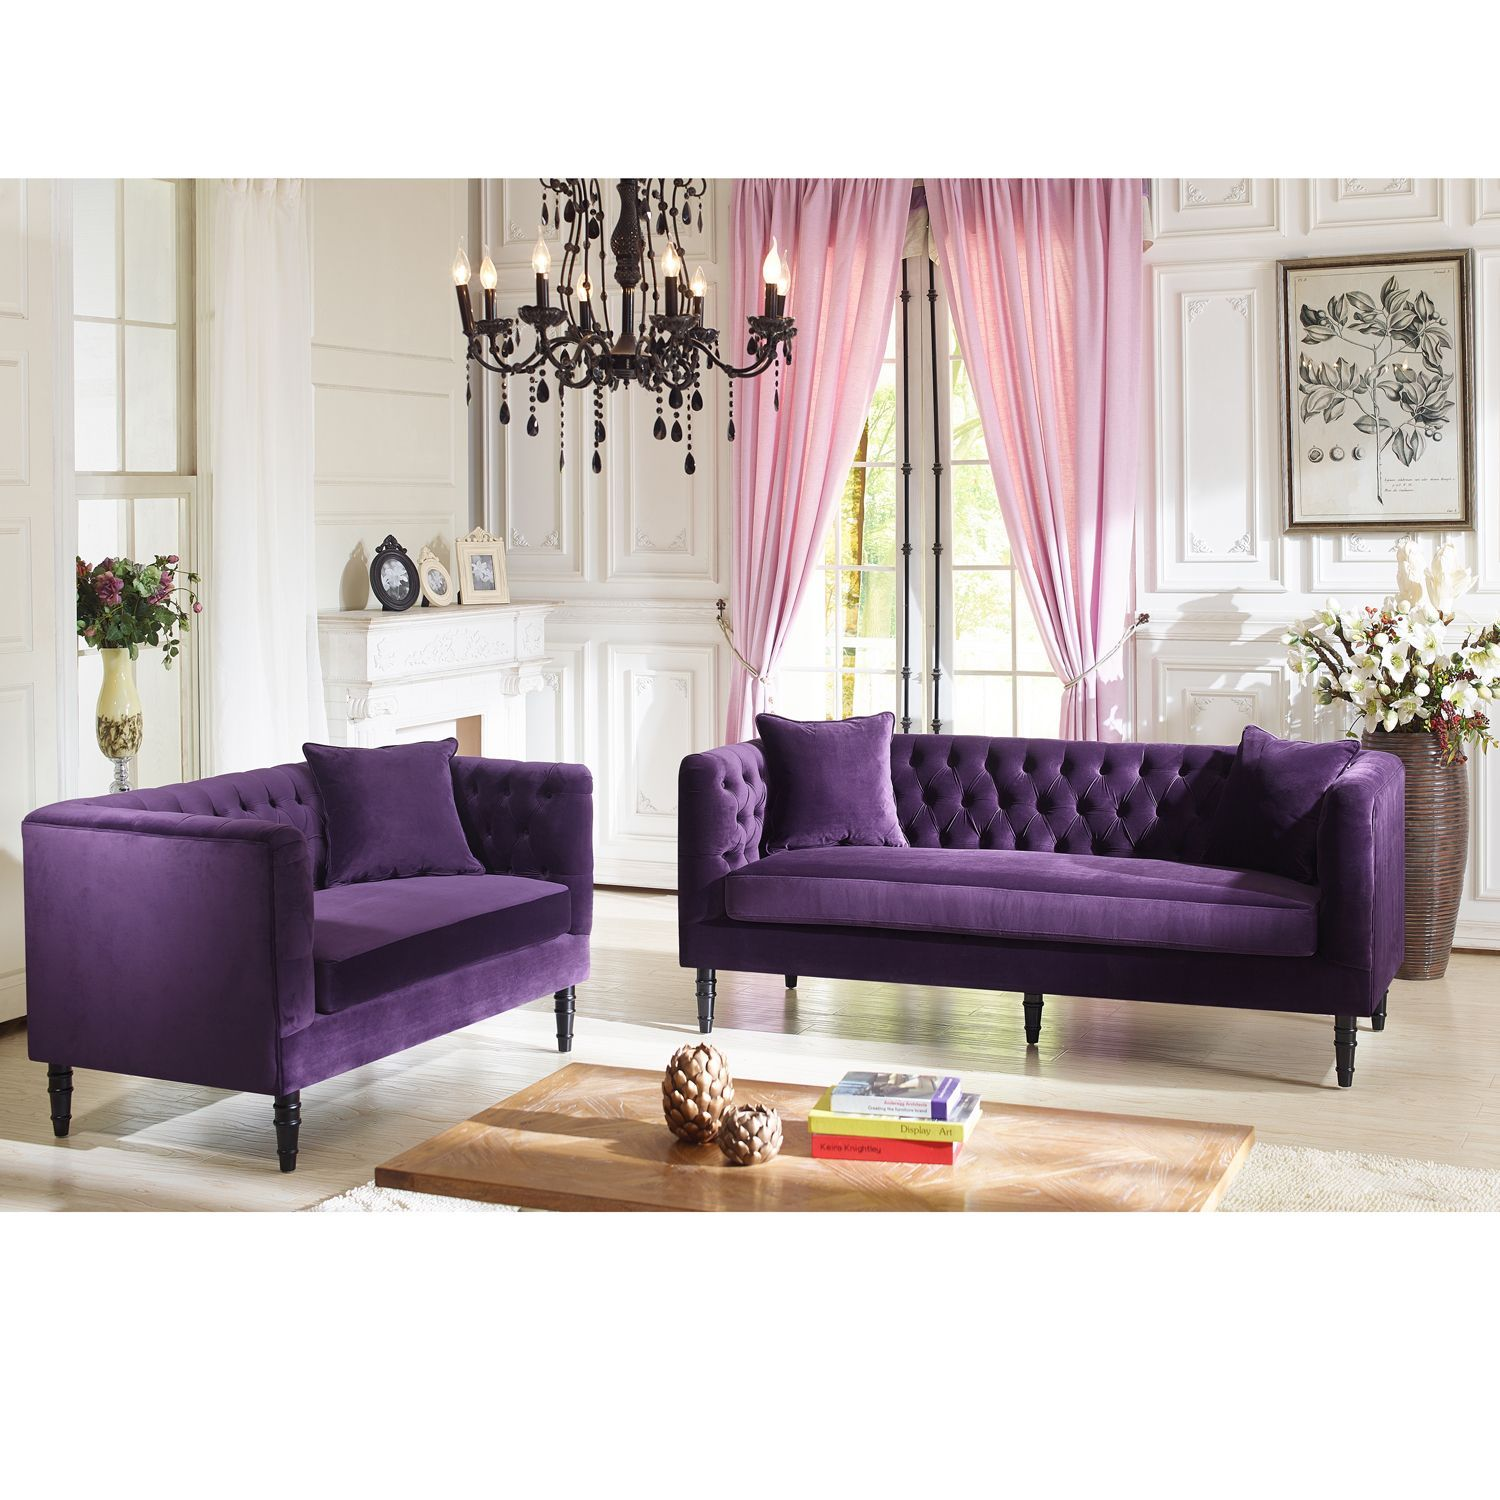 Groovy Baxton Studio Flynn French Inspired Purple Velvet Gmtry Best Dining Table And Chair Ideas Images Gmtryco